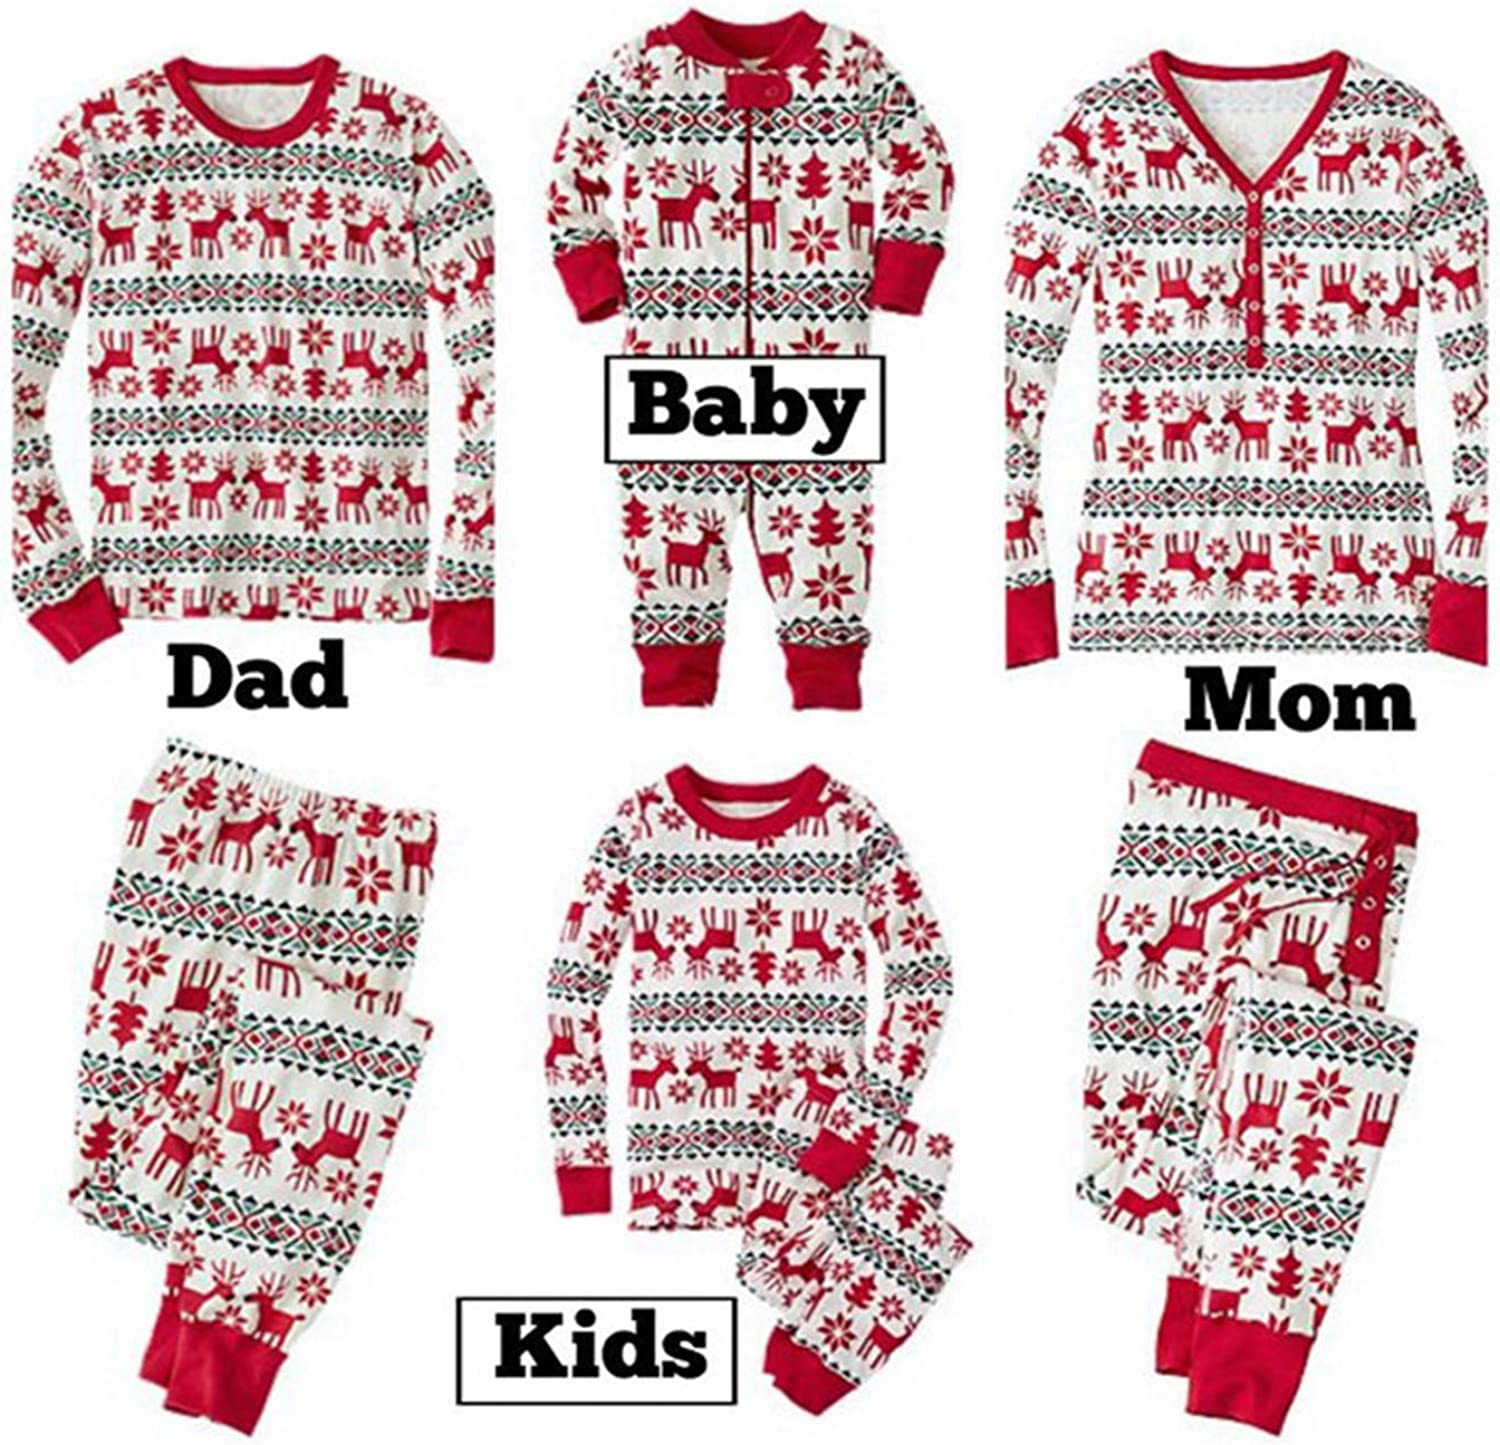 Thadensama New Family Christmas Pajama Family Matching Clothes Matching New Year Fashion Parent-Child Suit Baby 4XL